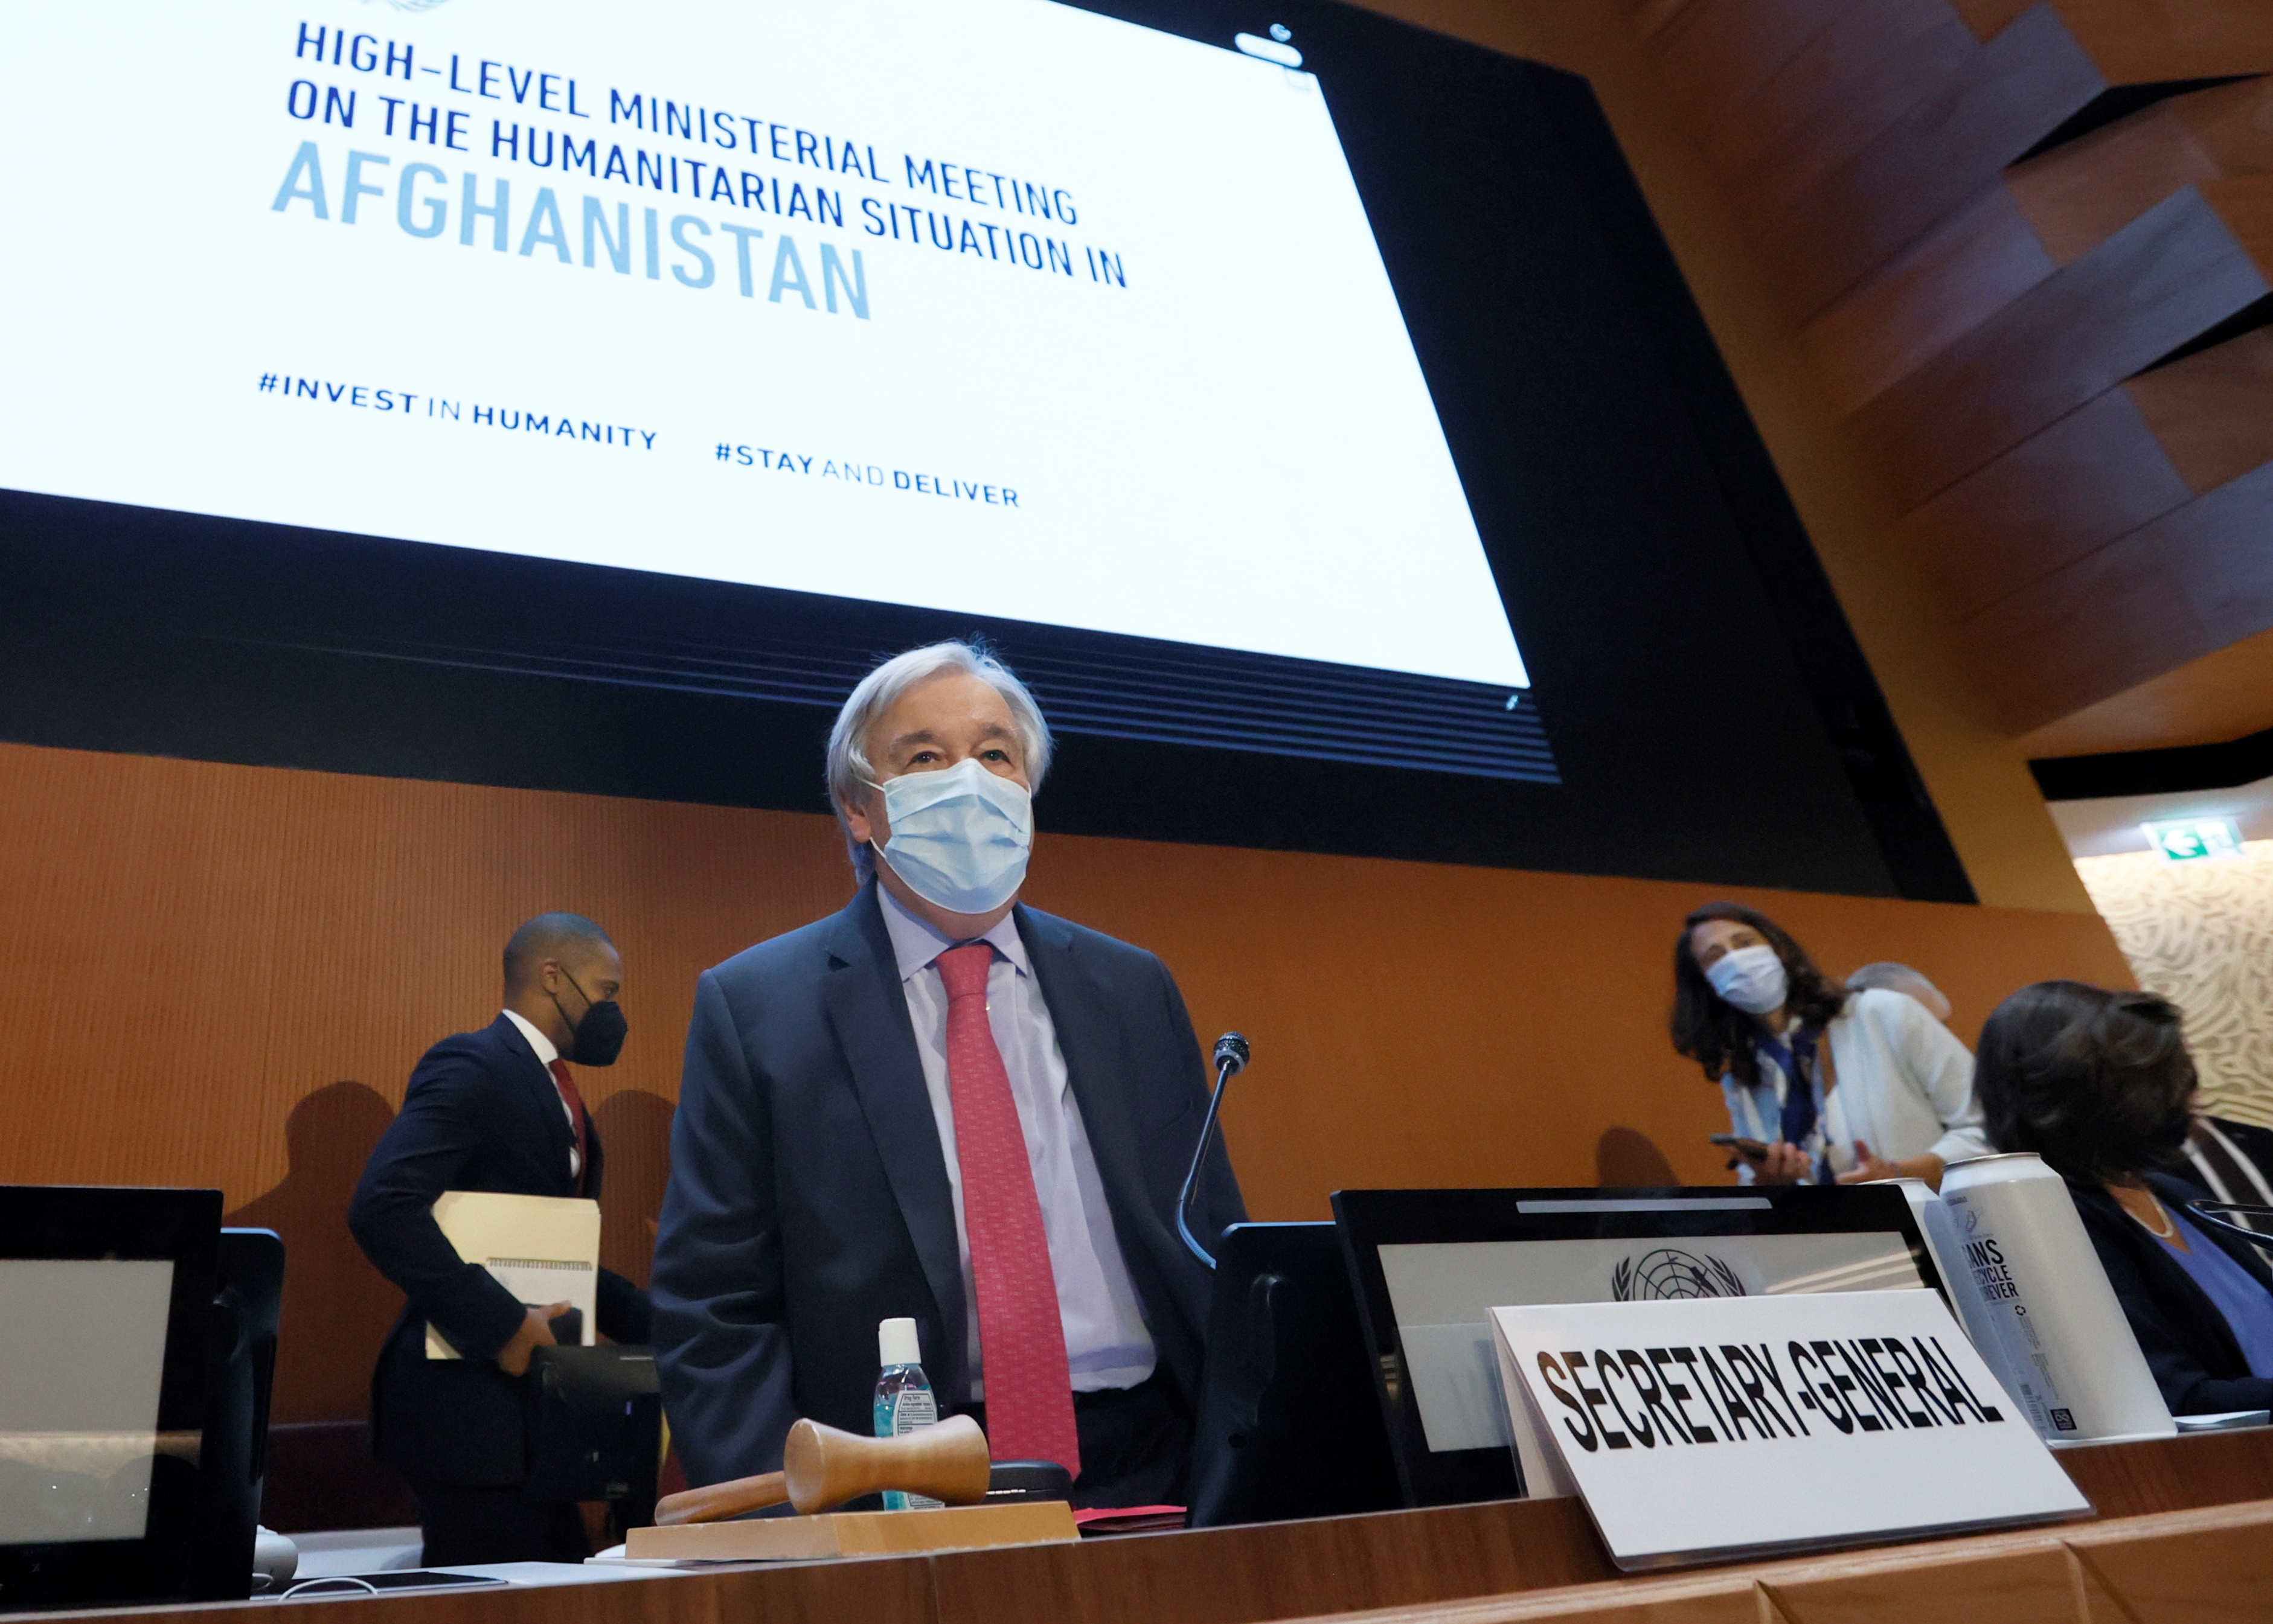 U.N. Secretary-General Antonio Guterres arrives to atend an aid conference for Afghanistan at the United Nations in Geneva, Switzerland, September 13, 2021. REUTERS/Denis Balibouse